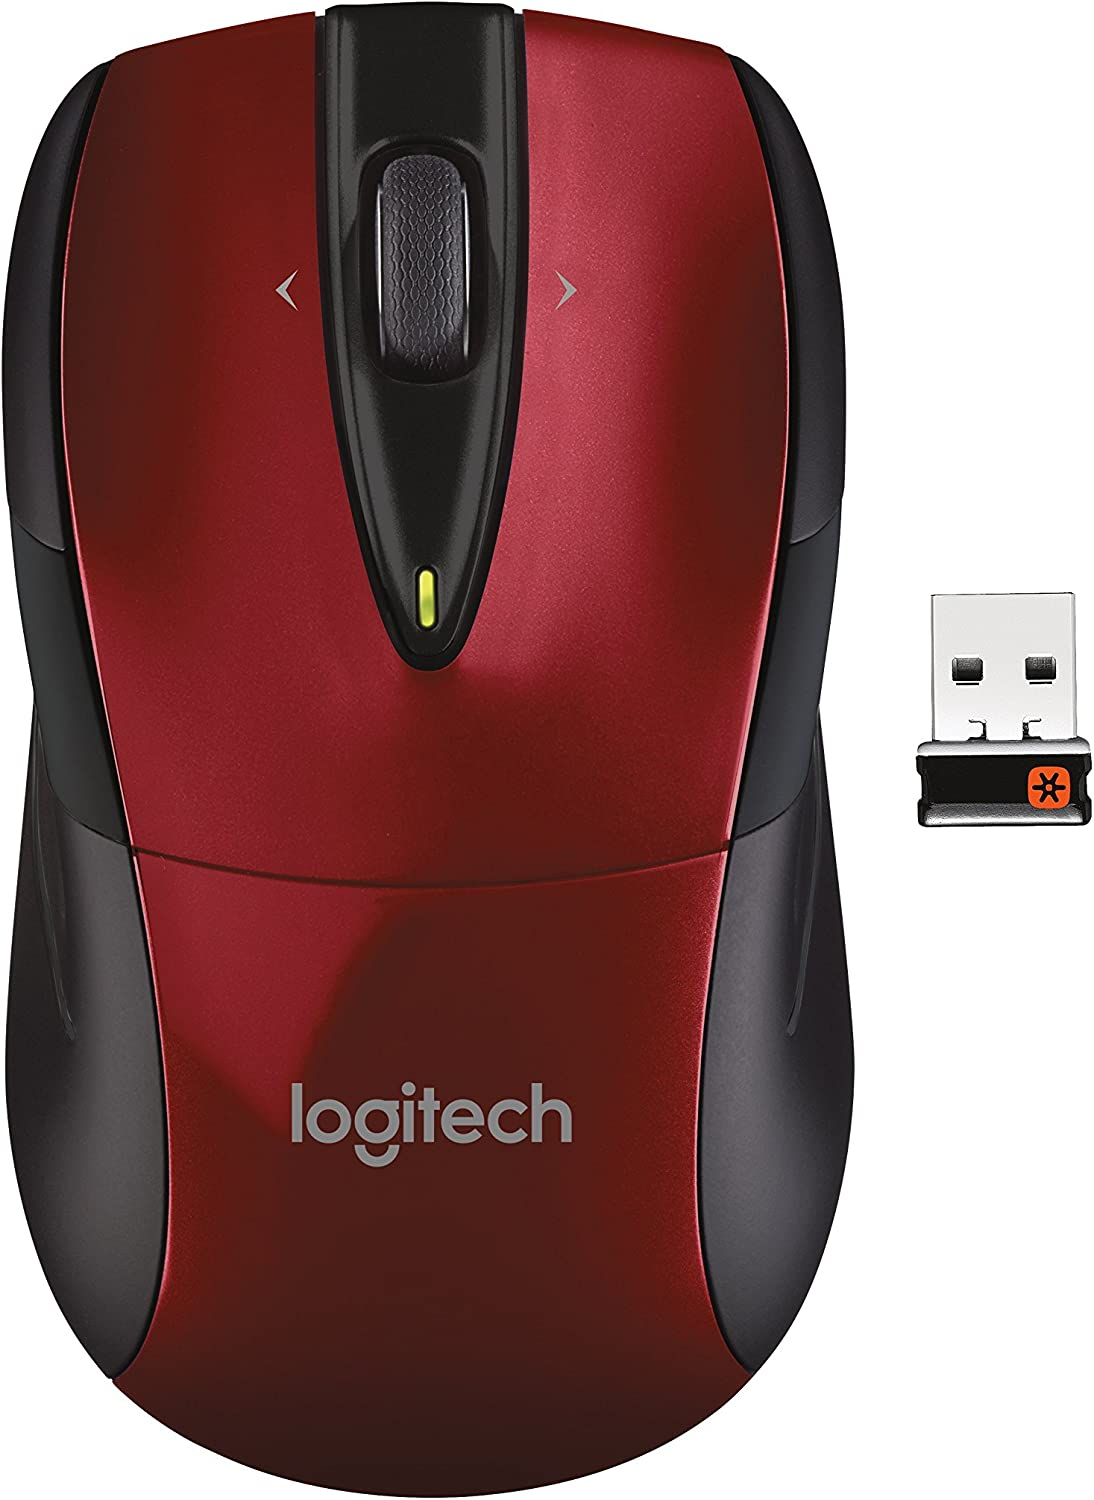 Logitech Wireless Mouse M525 - Red/Black